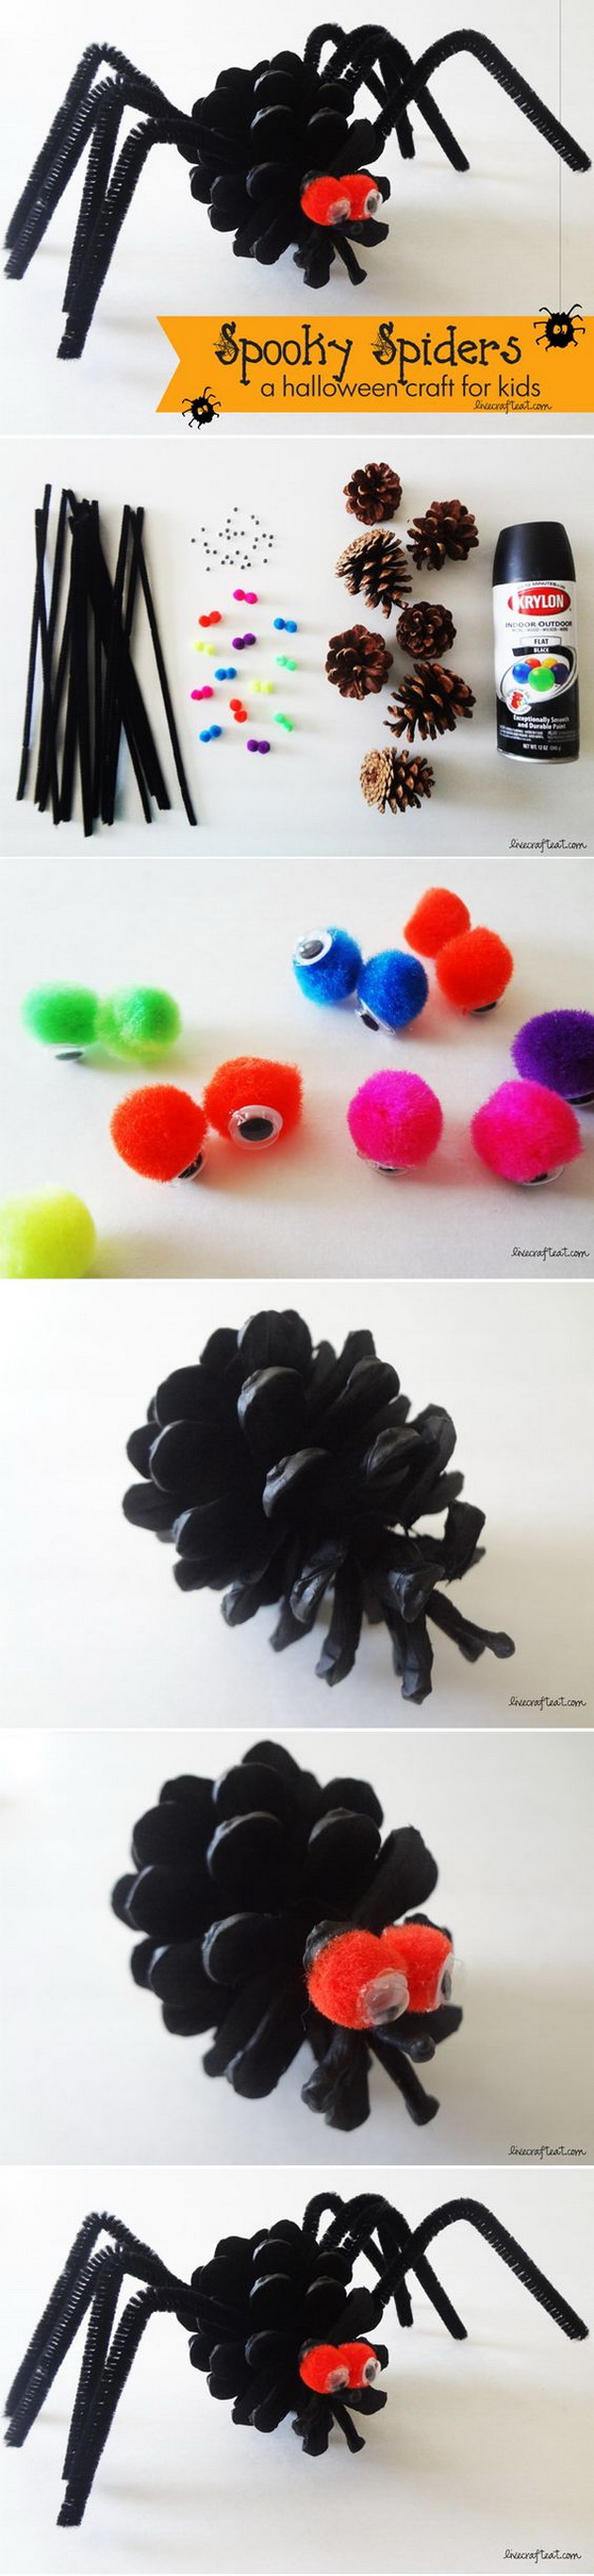 Spooky Spiders Made with Pine Cone. Make these super easy spooky spiders with pine cones! It is really a fun Halloween craft for kids.